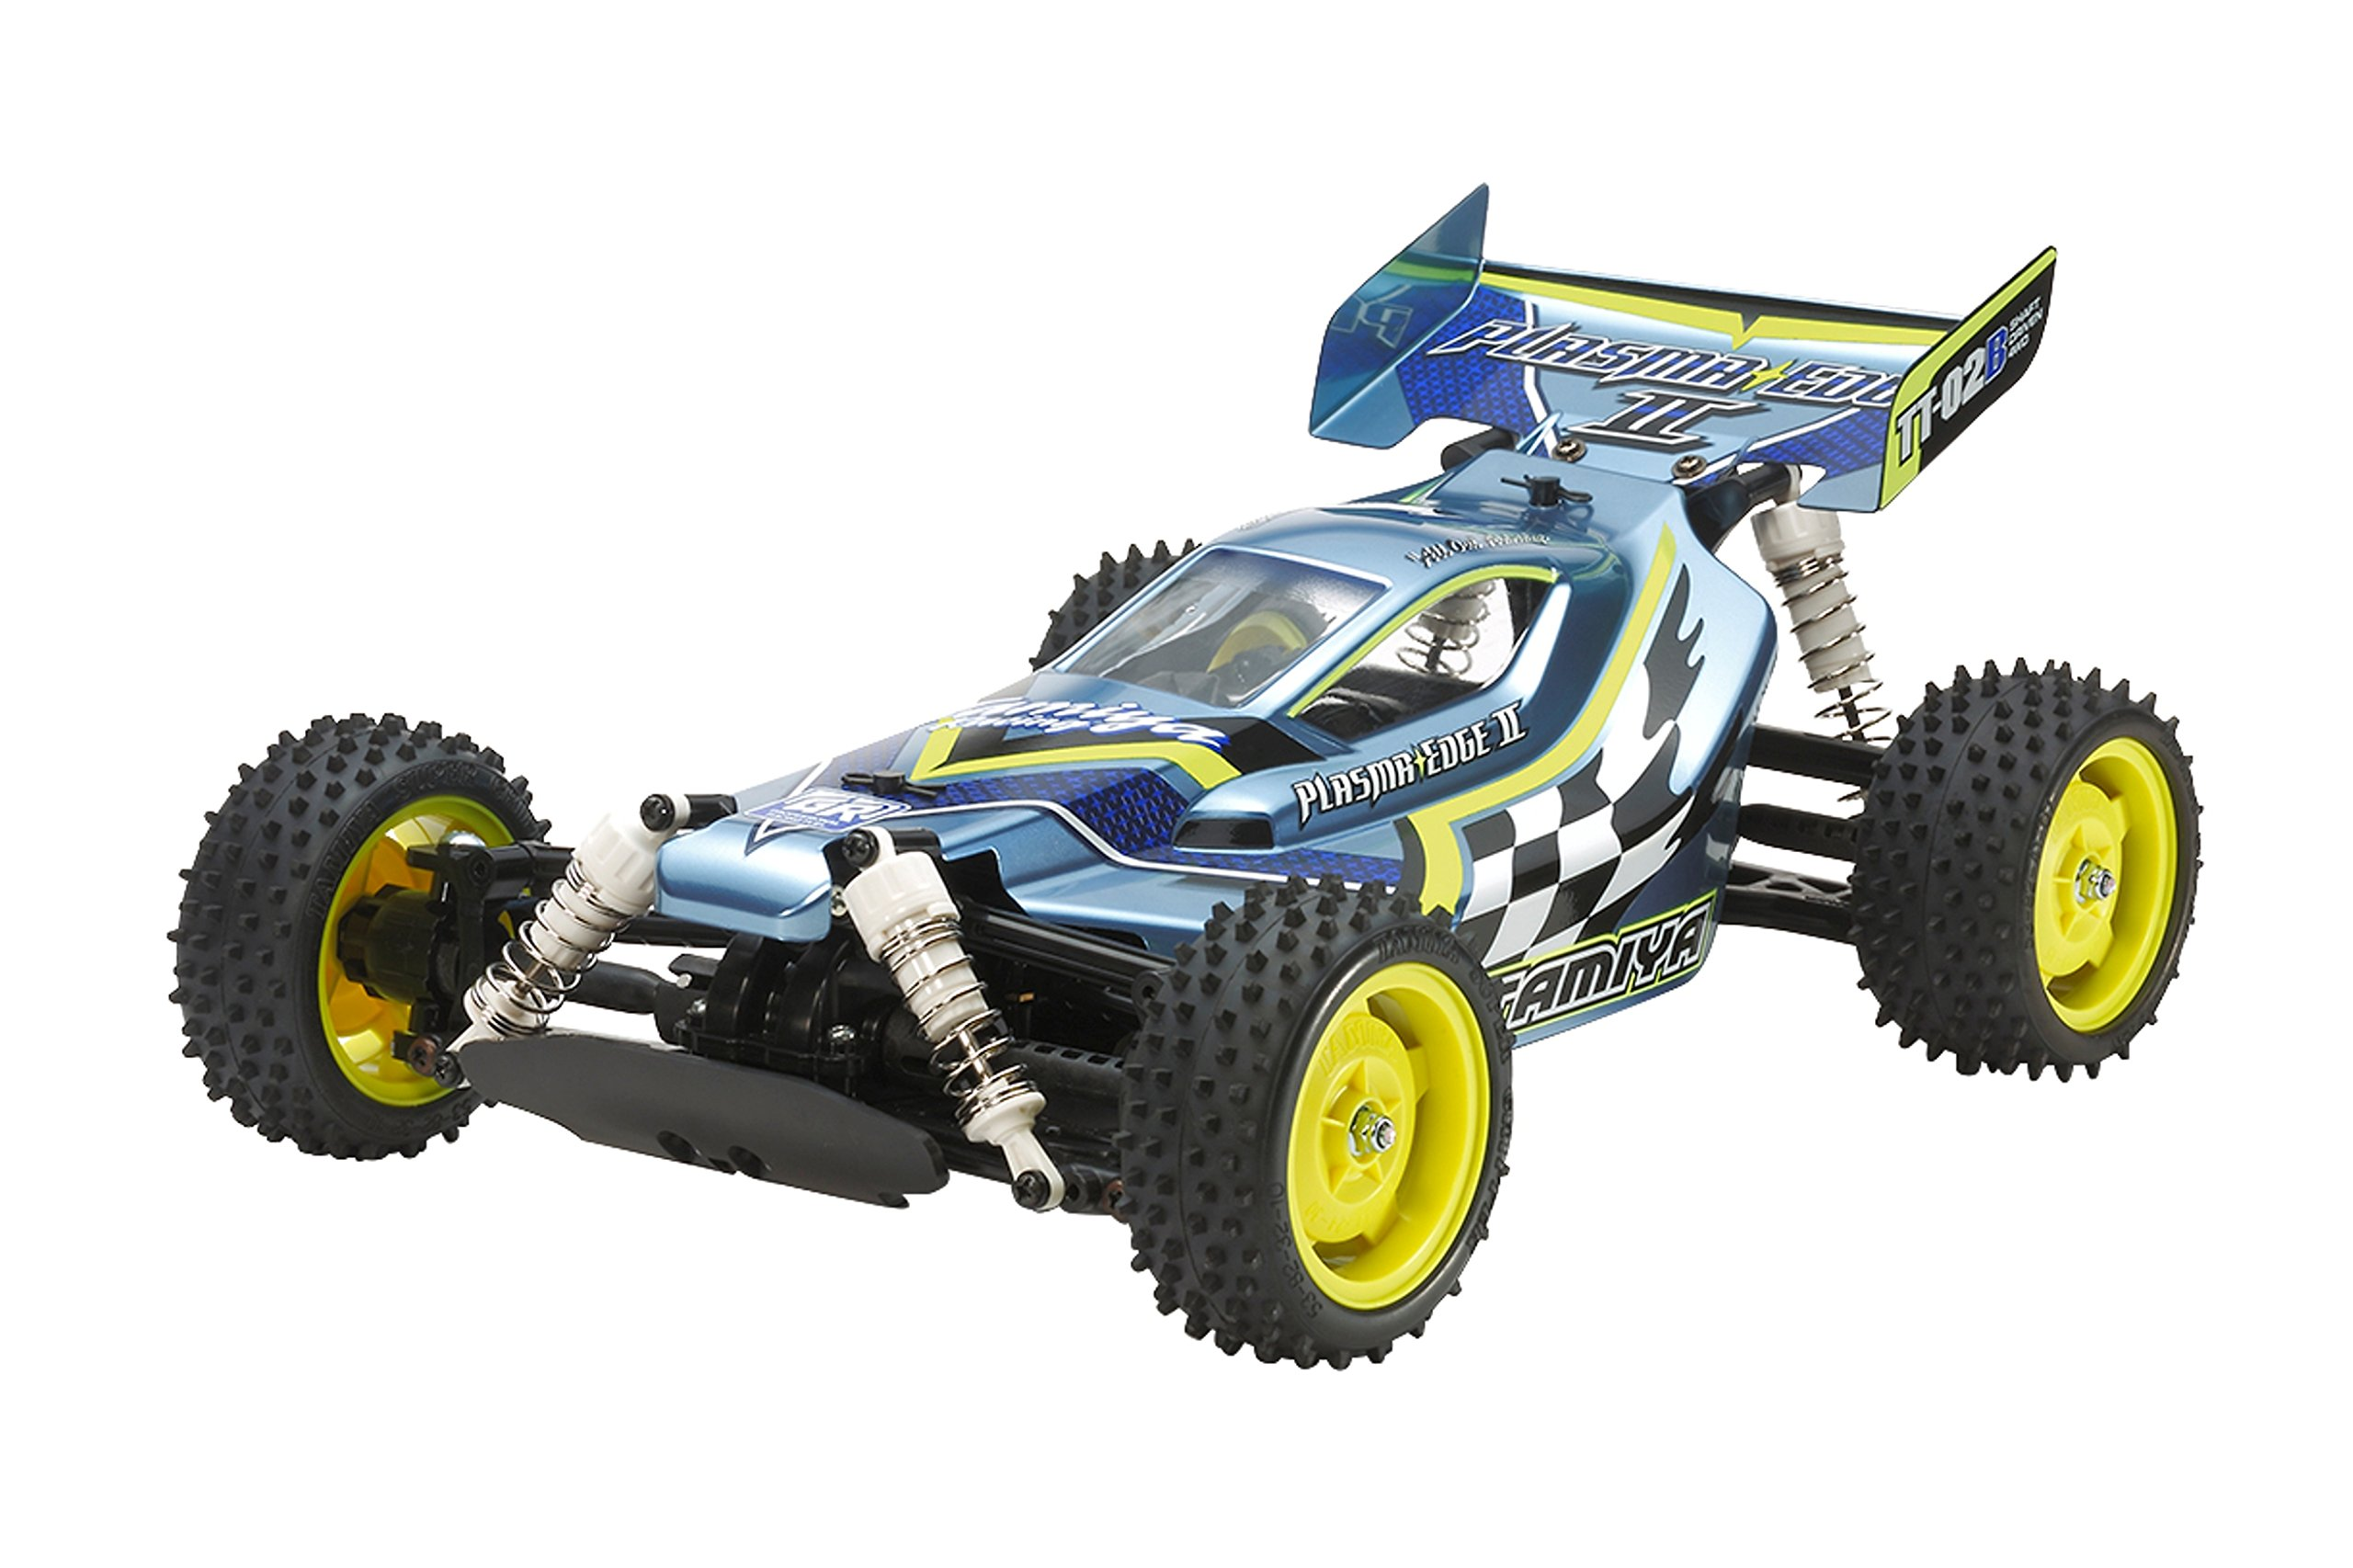 1/10 Plasma Edge II Off-Road Buggy, TT-02B 4WD Kit